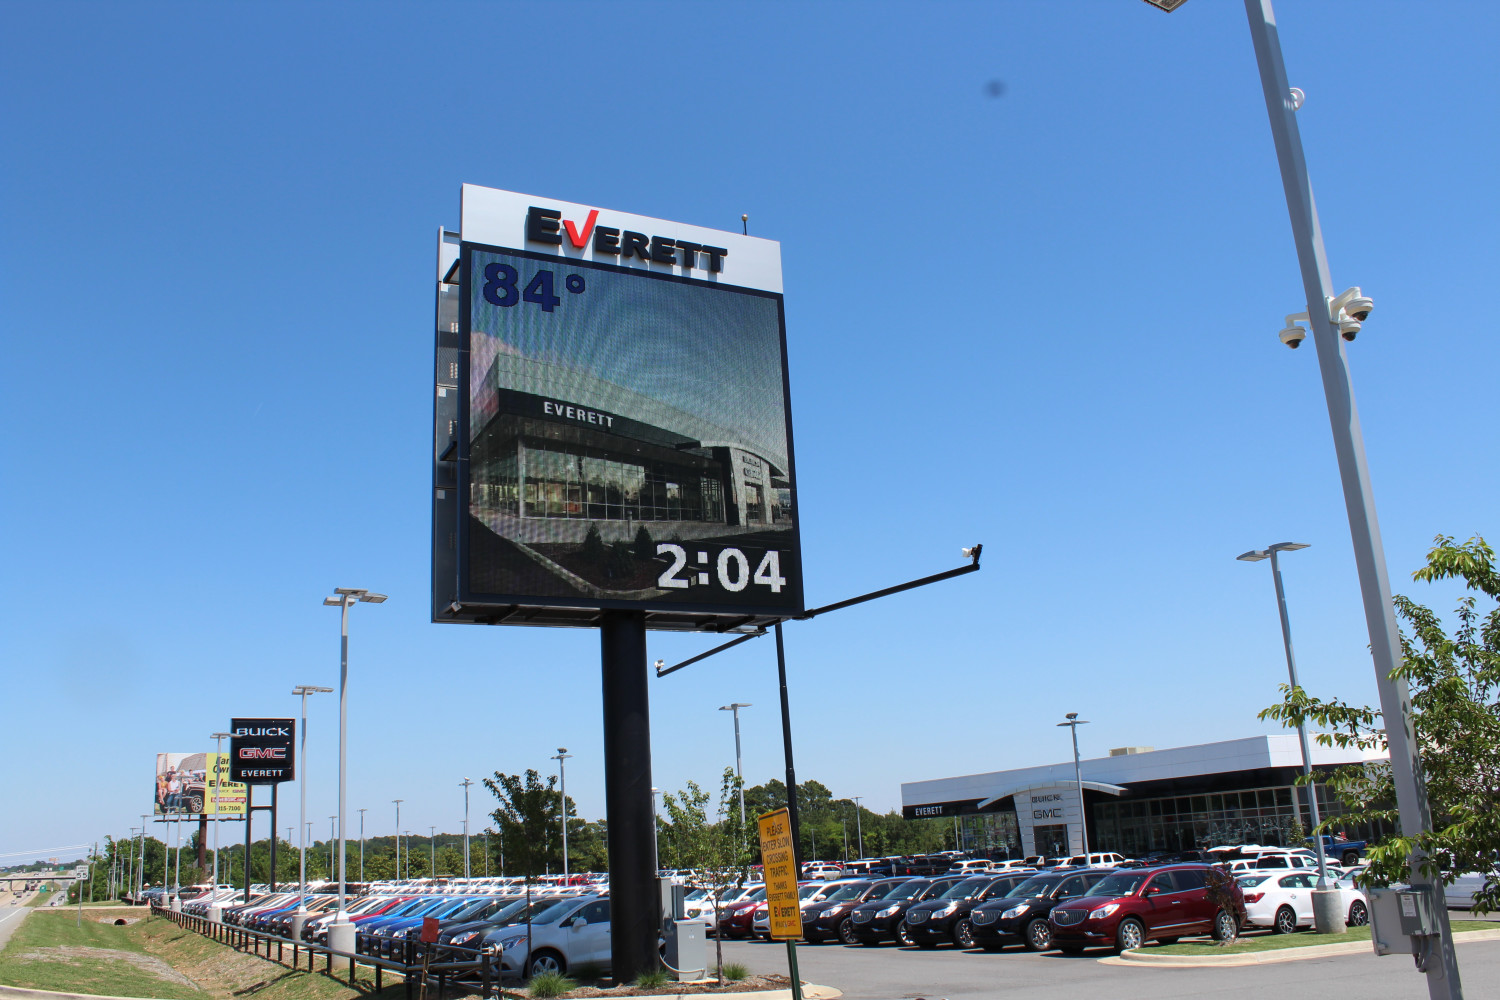 20'x20' 2 sided 19mm Watchfire Display with lighted reverse lit channel letters. Located at Everett Buick GMC in Bryant, Arkansas.